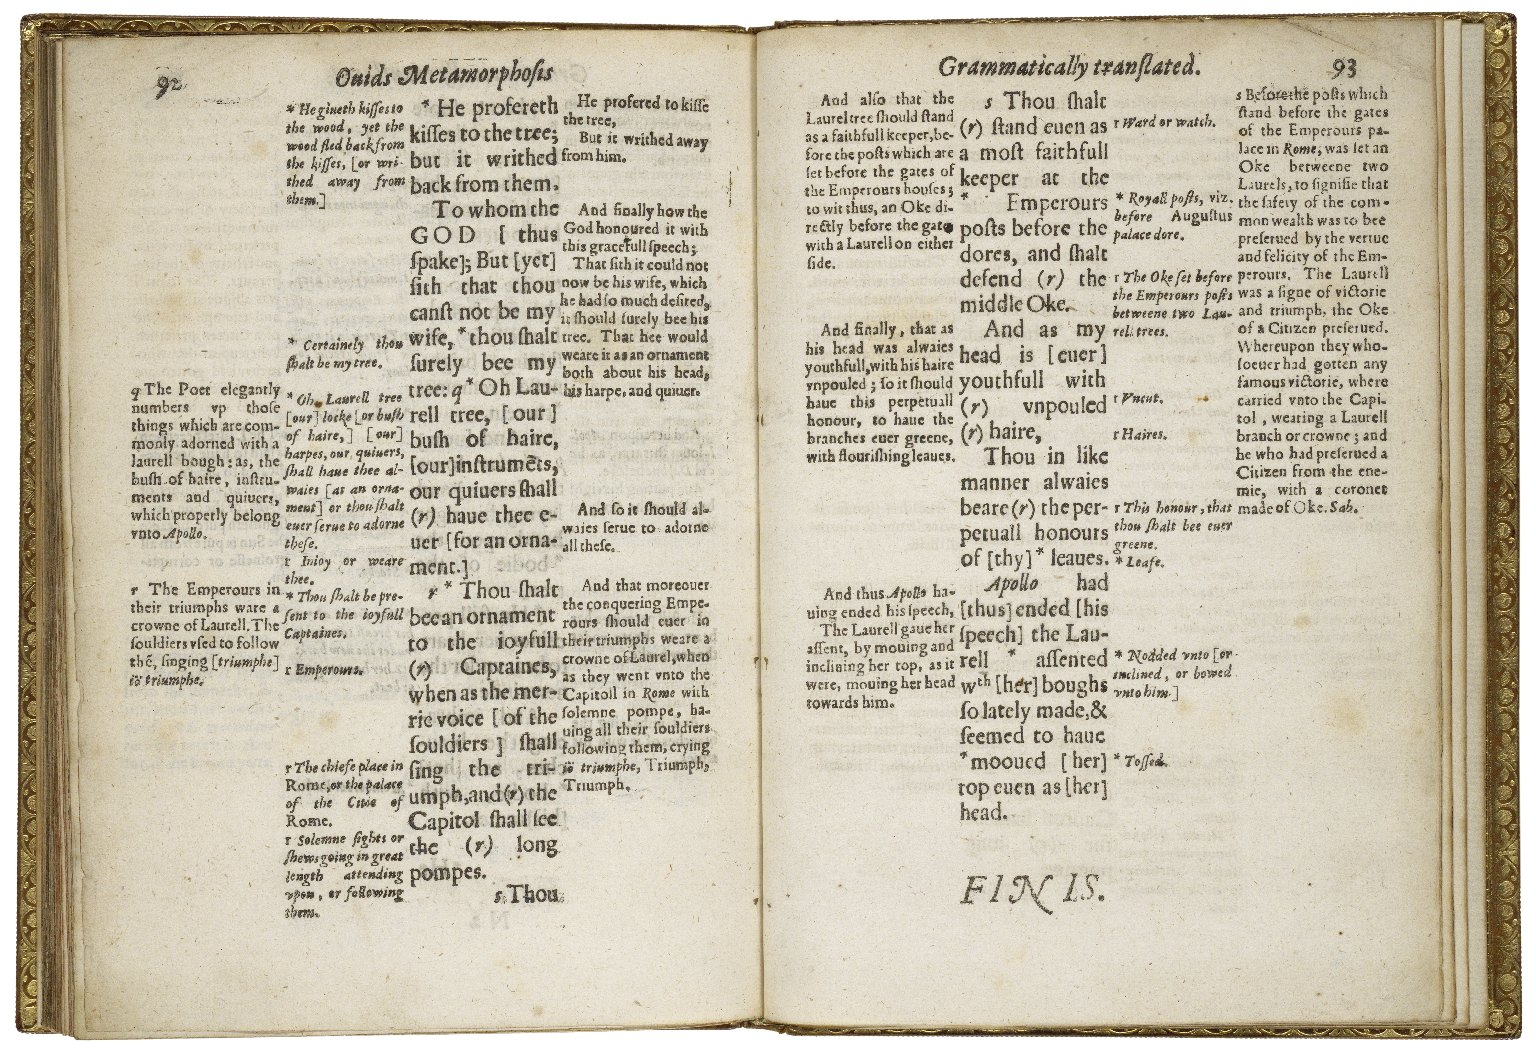 [Metamorphoses. Liber 1. English] Ouids Metamorphosis translated grammatically, and also according to the propriety of our English tongue, so farre as grammar and the verse will well beare. Written chiefly for the good of schooles, to be vsed according to the directions in the preface to the painefull schoole-master, and more fully in the booke called Ludus Literarius, or the Grammar-schoole, Chap. 8.